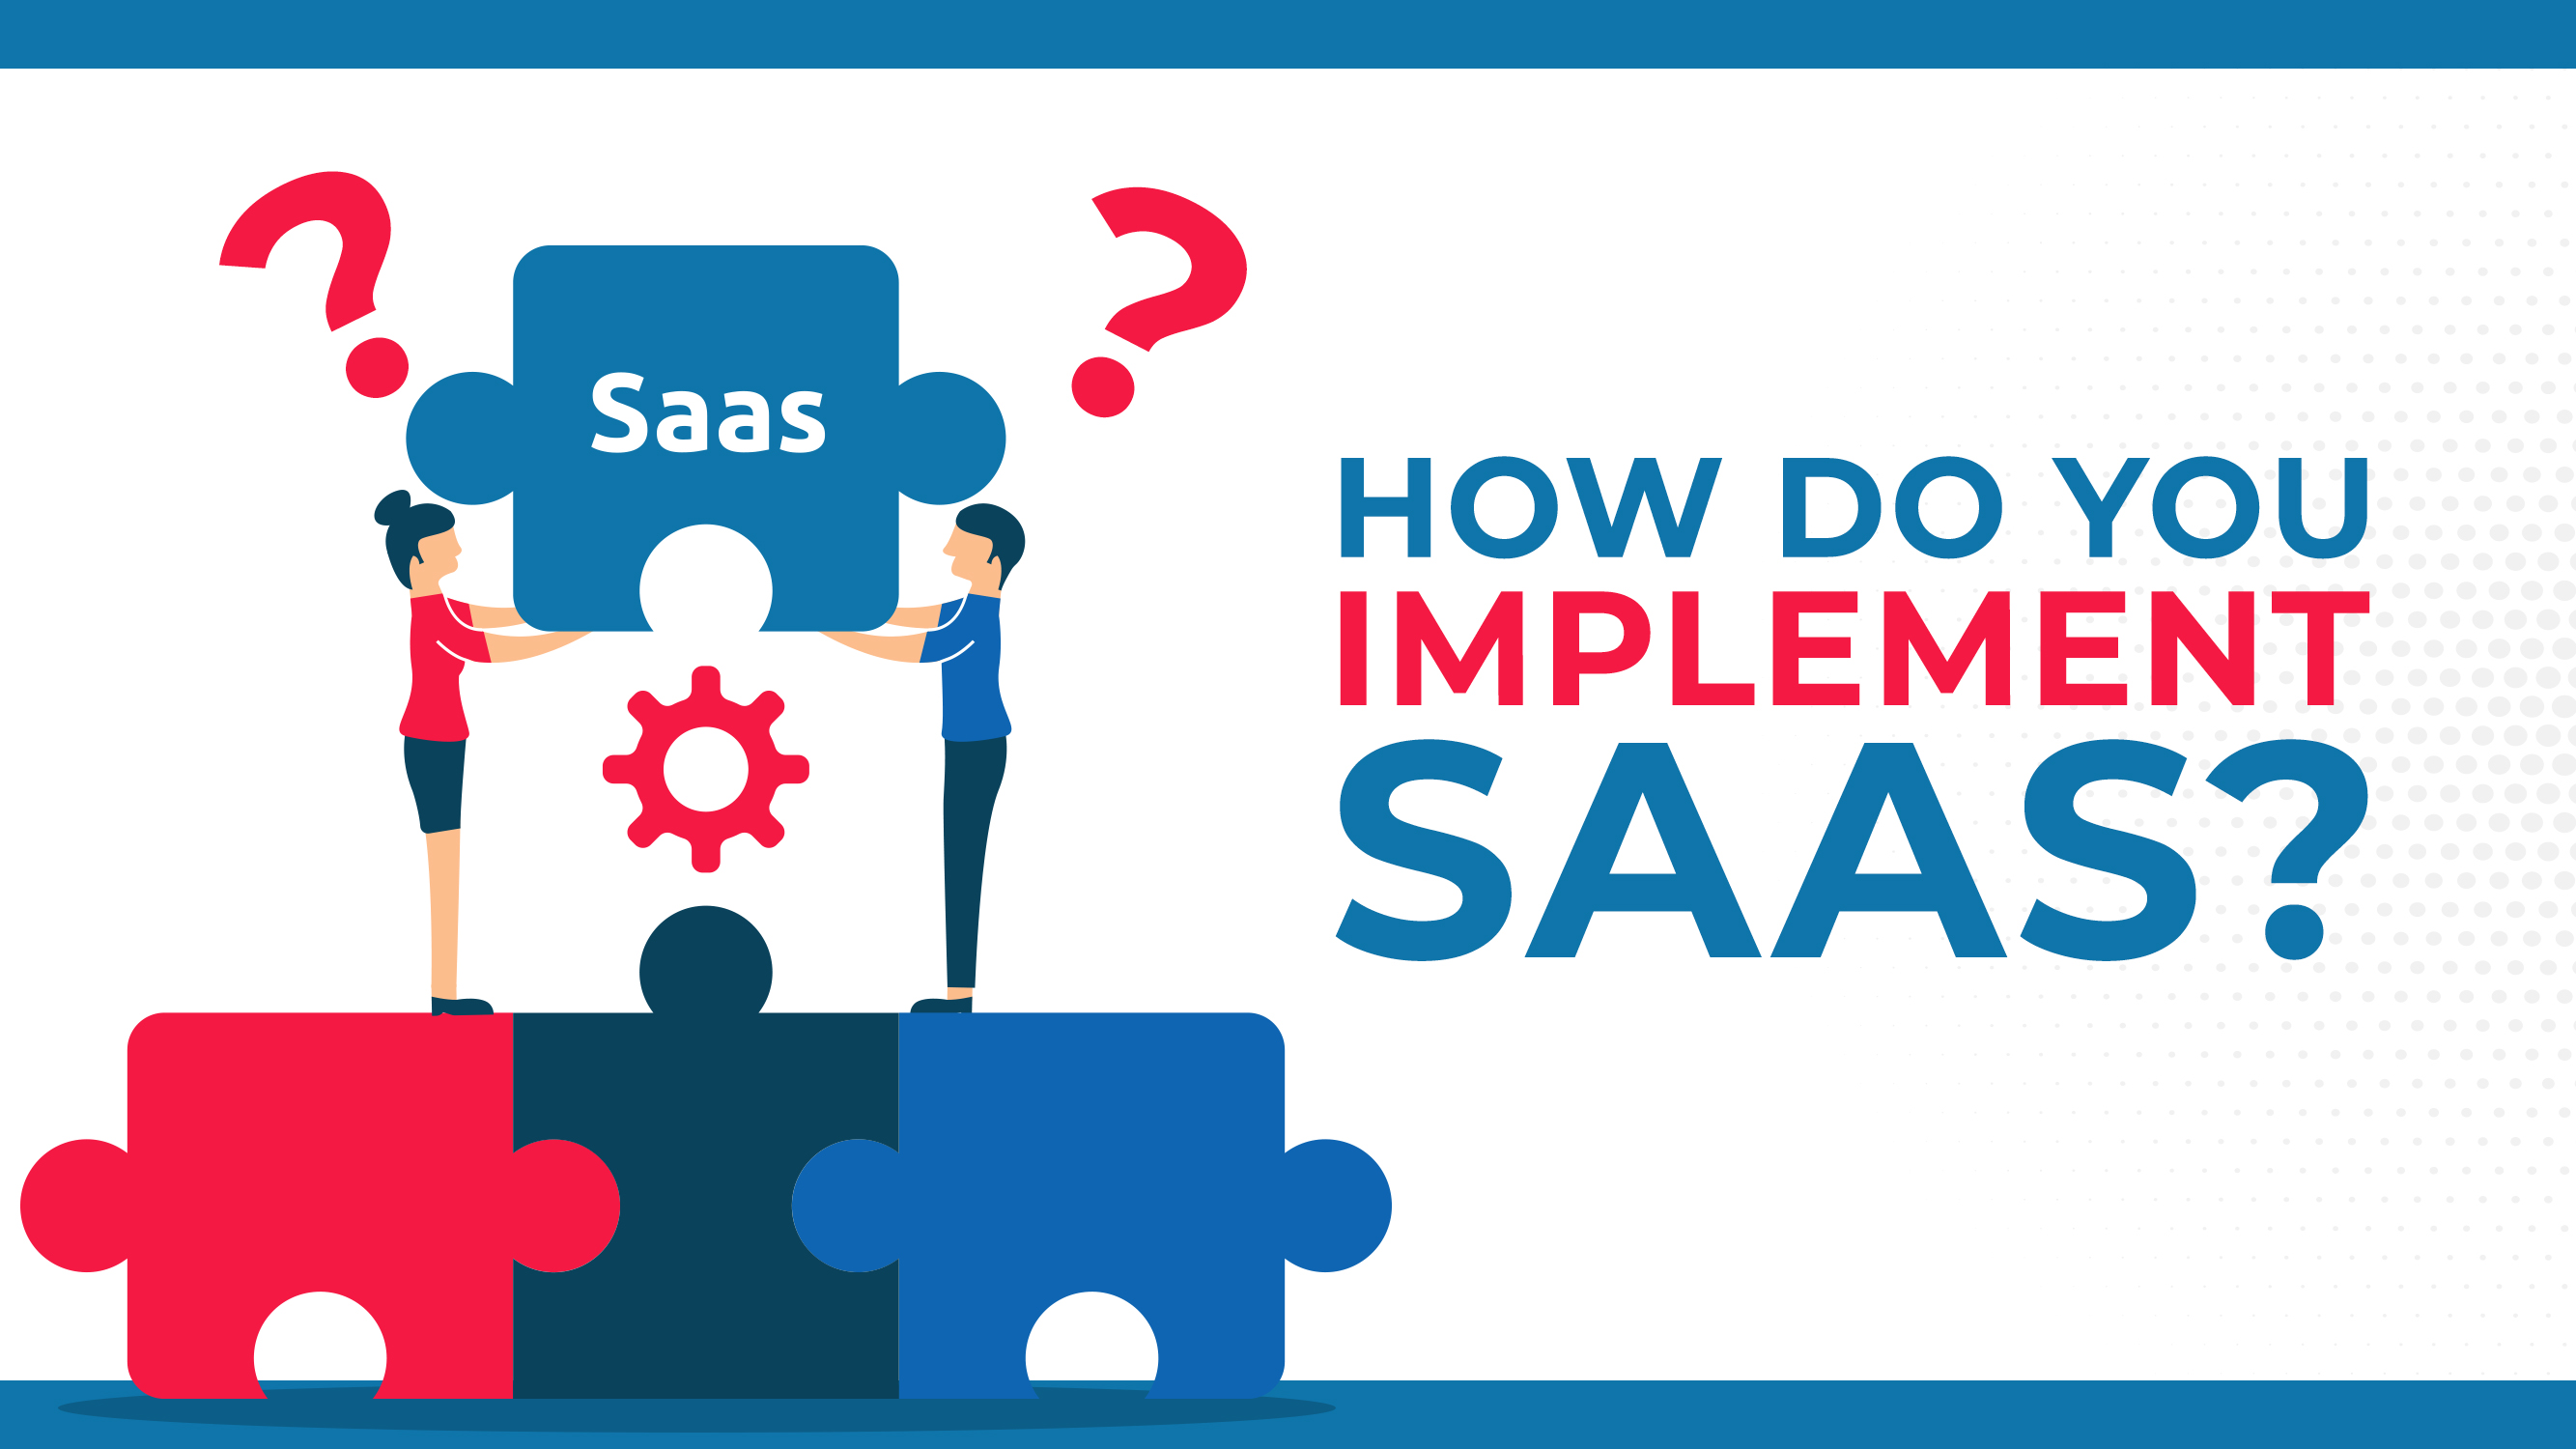 How Do You Implement SAAS?